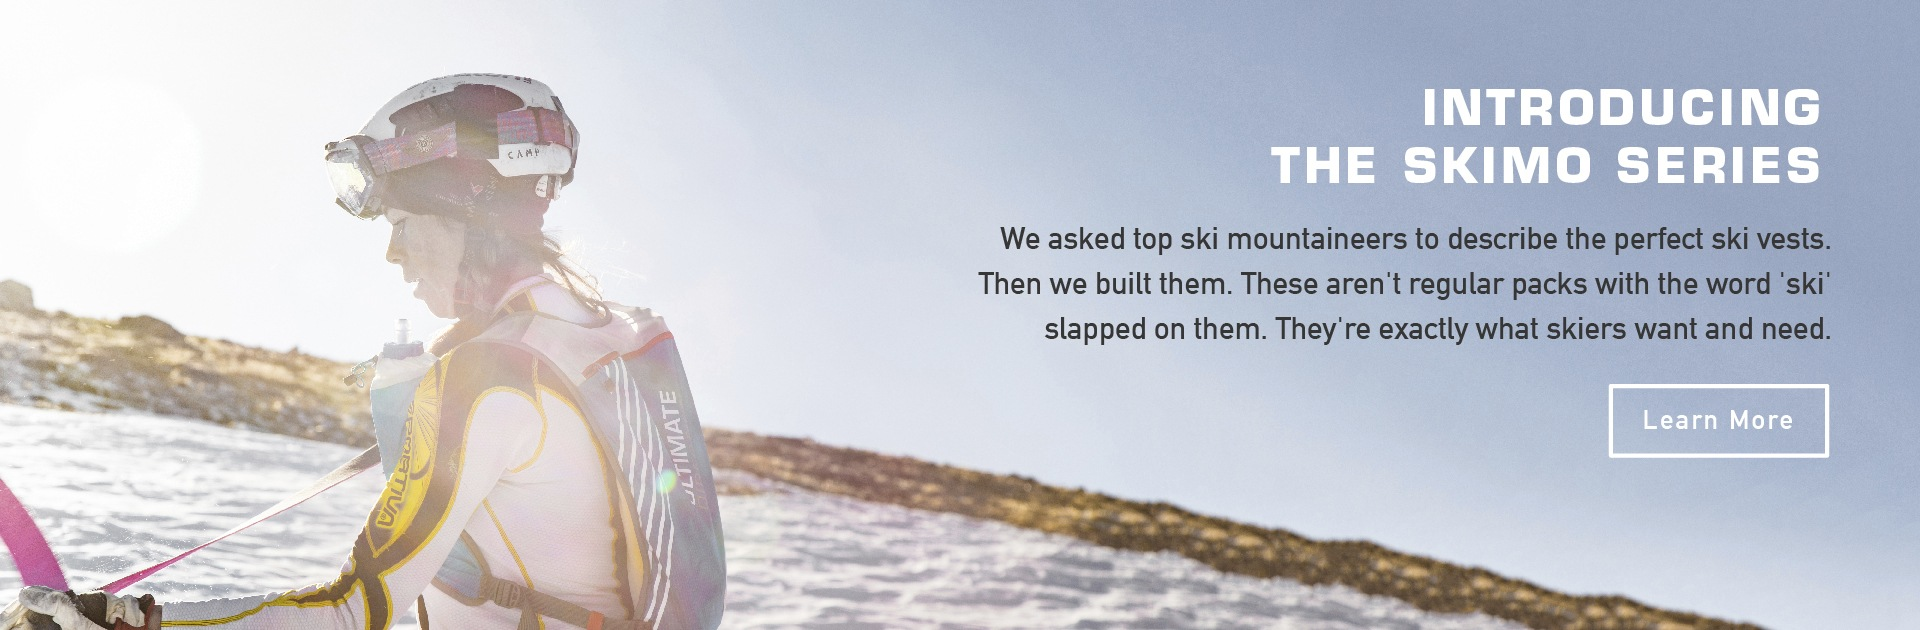 Introducing the new SkiMo Series